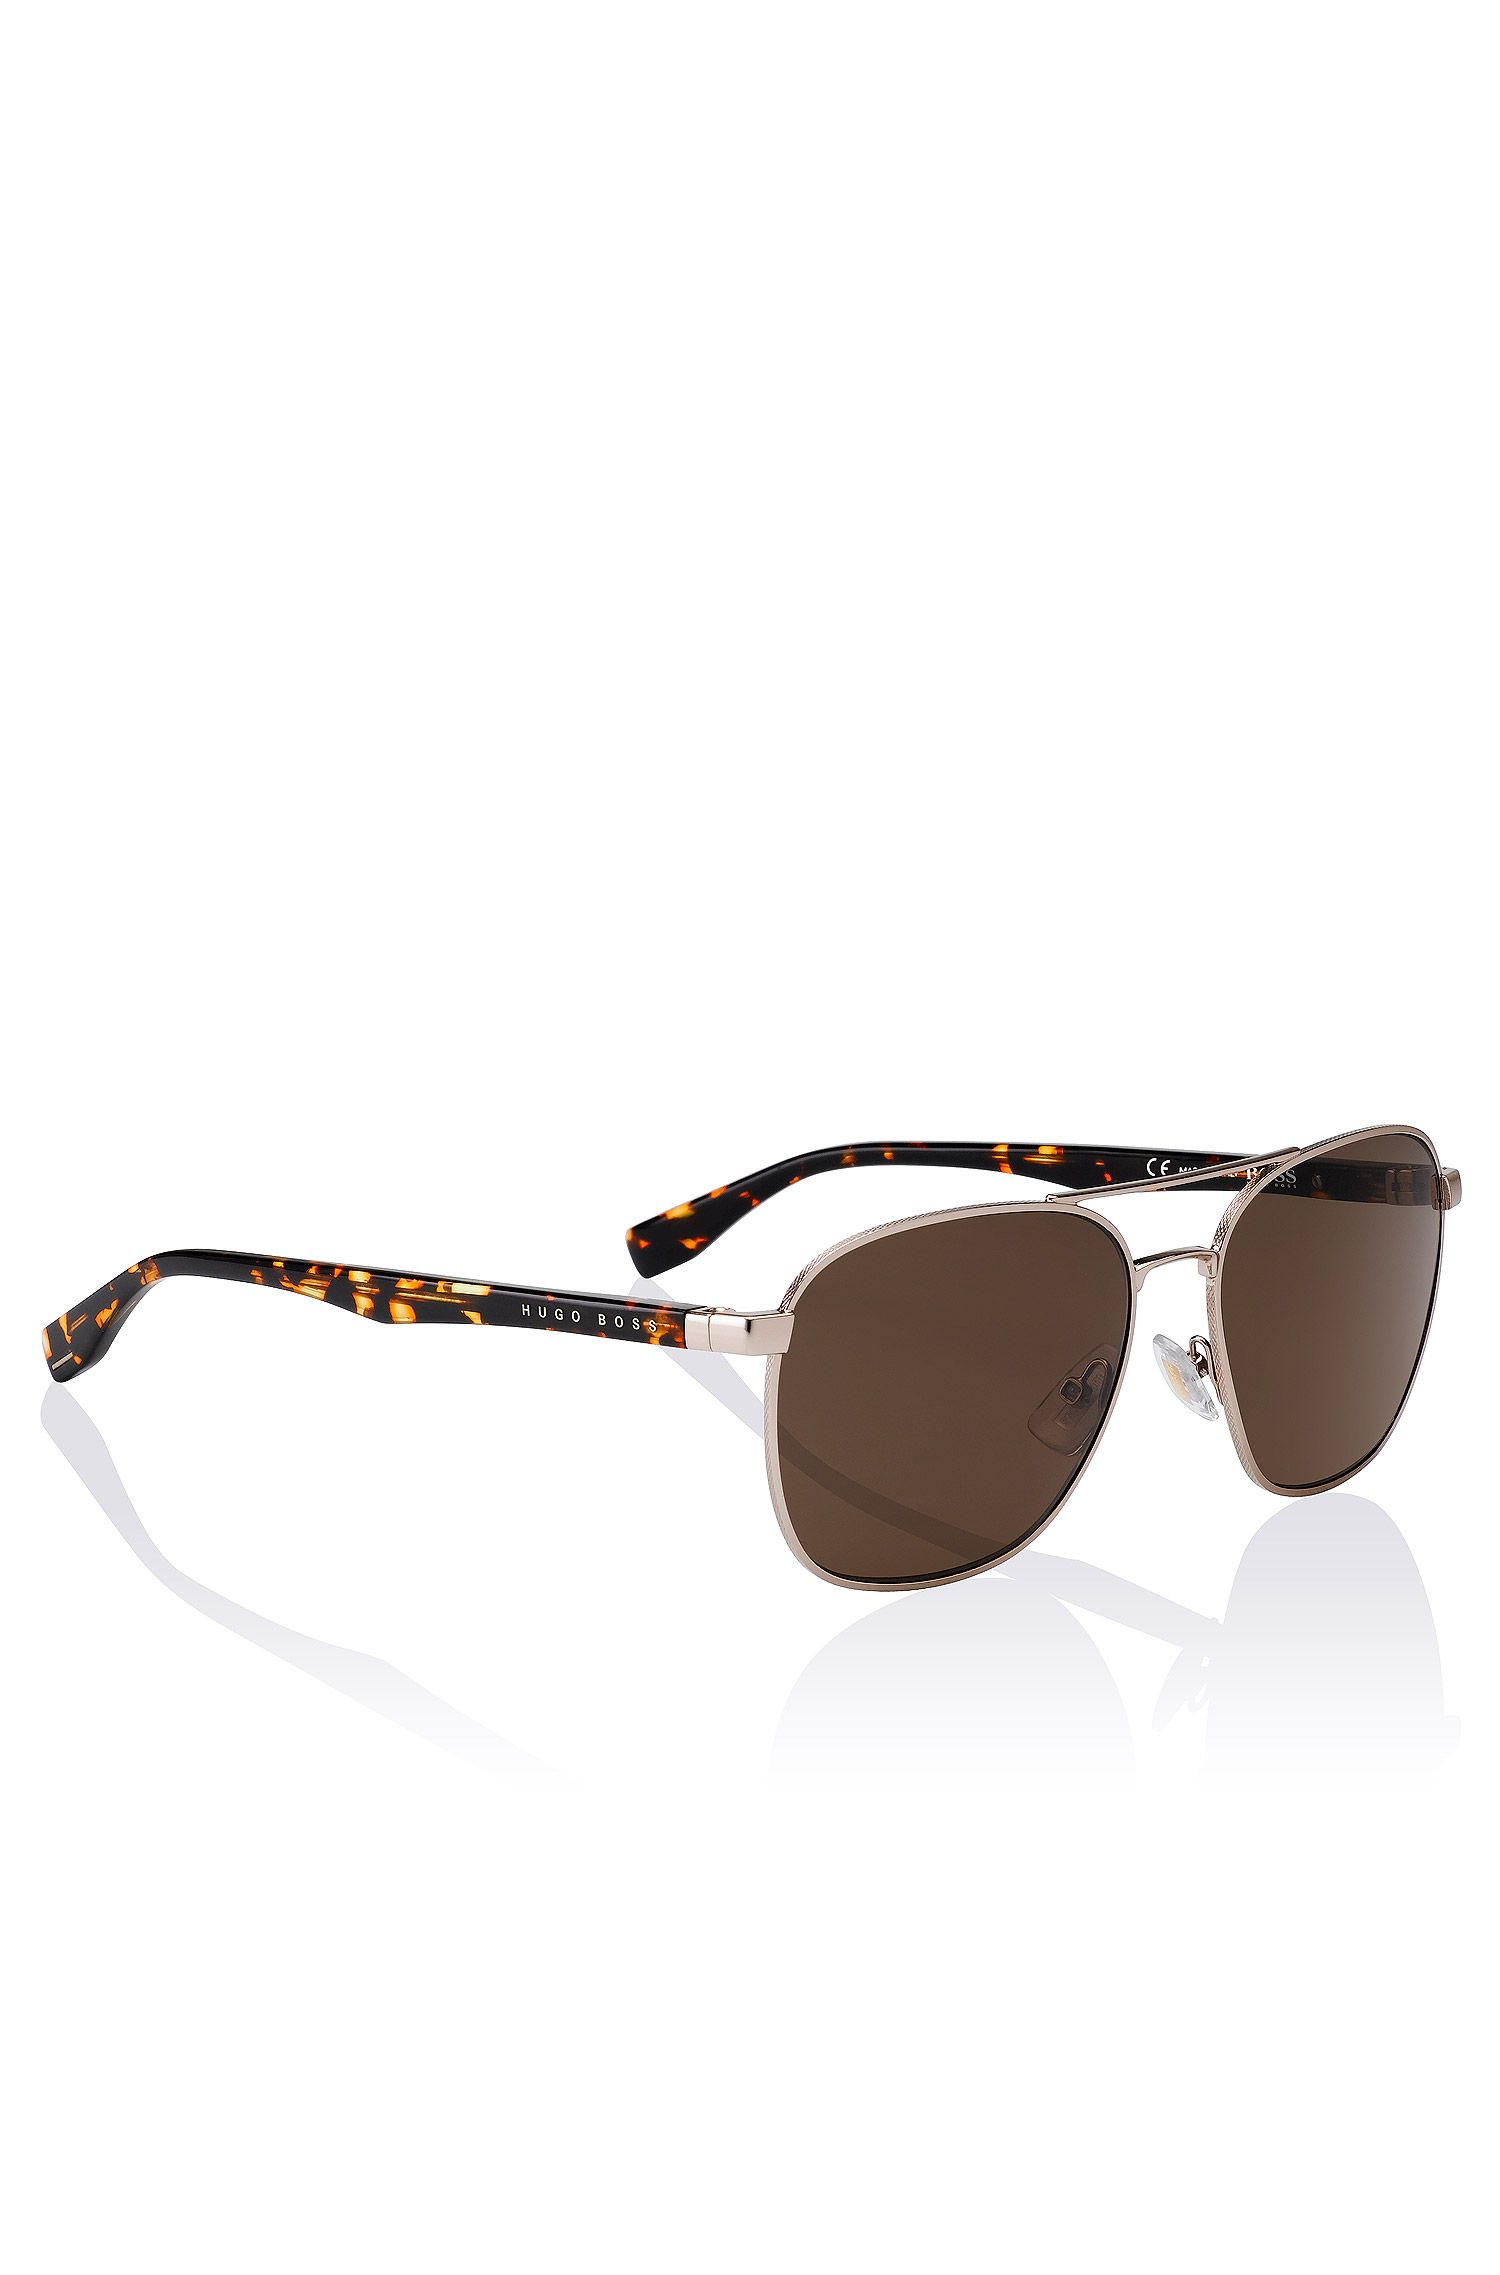 Aviator sunglasses 'BOSS 0701/S'